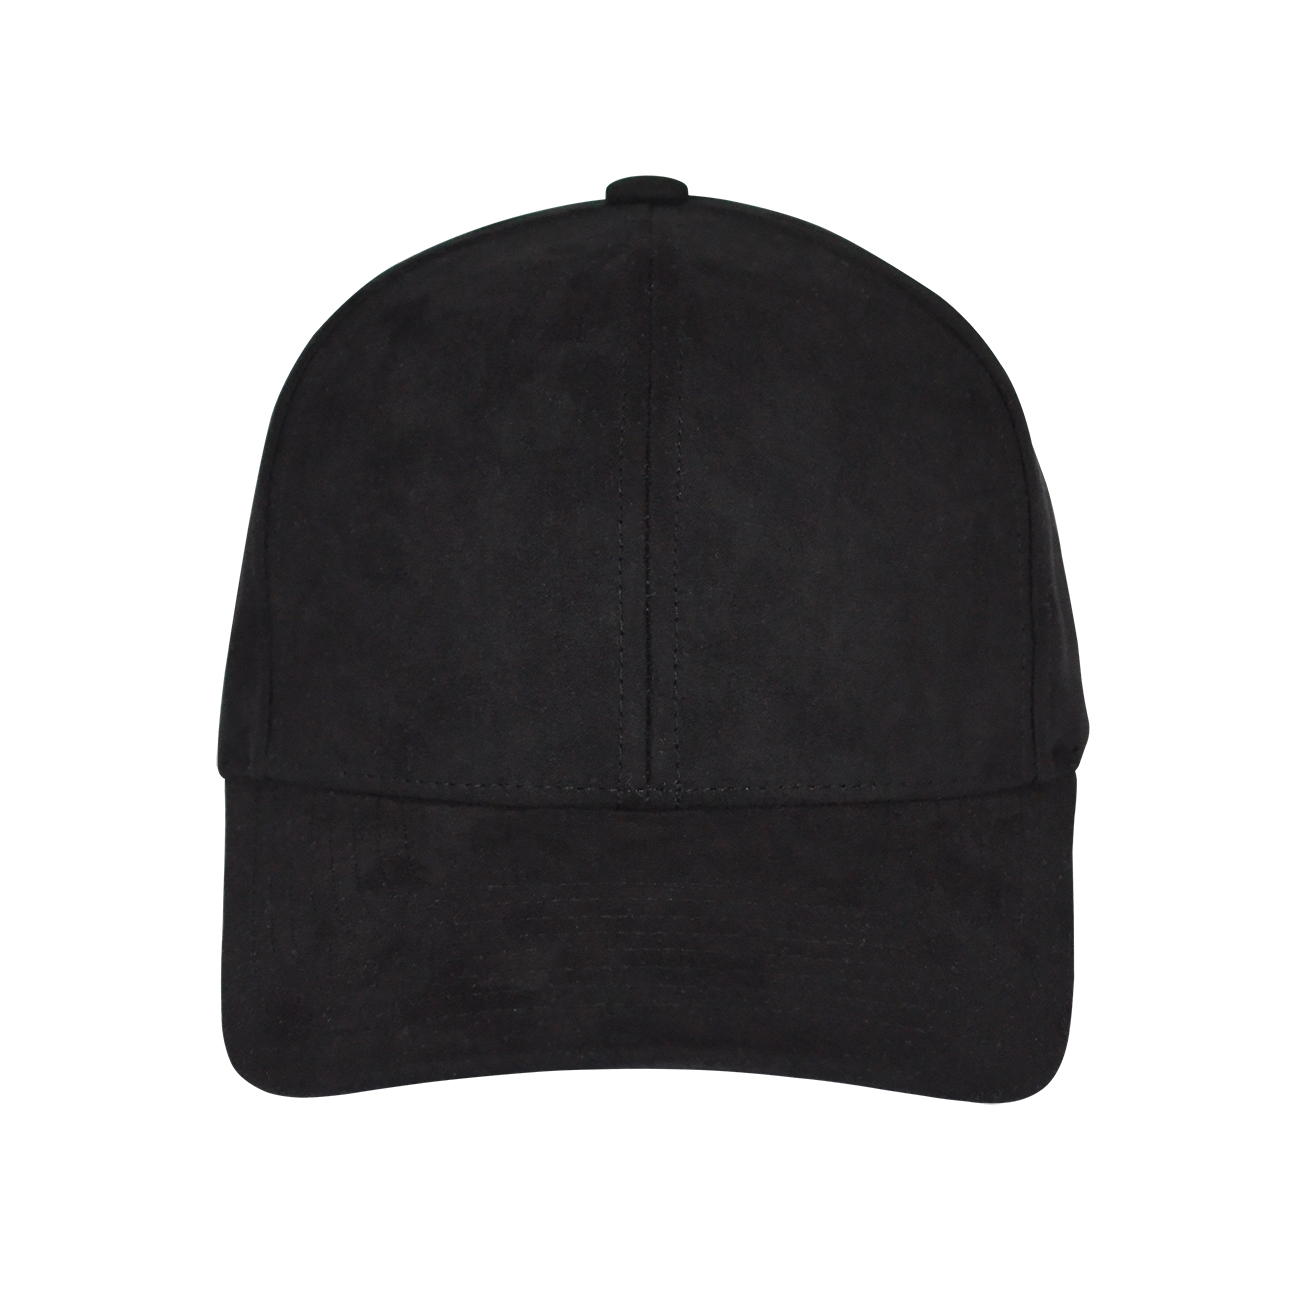 Black baseball hat front